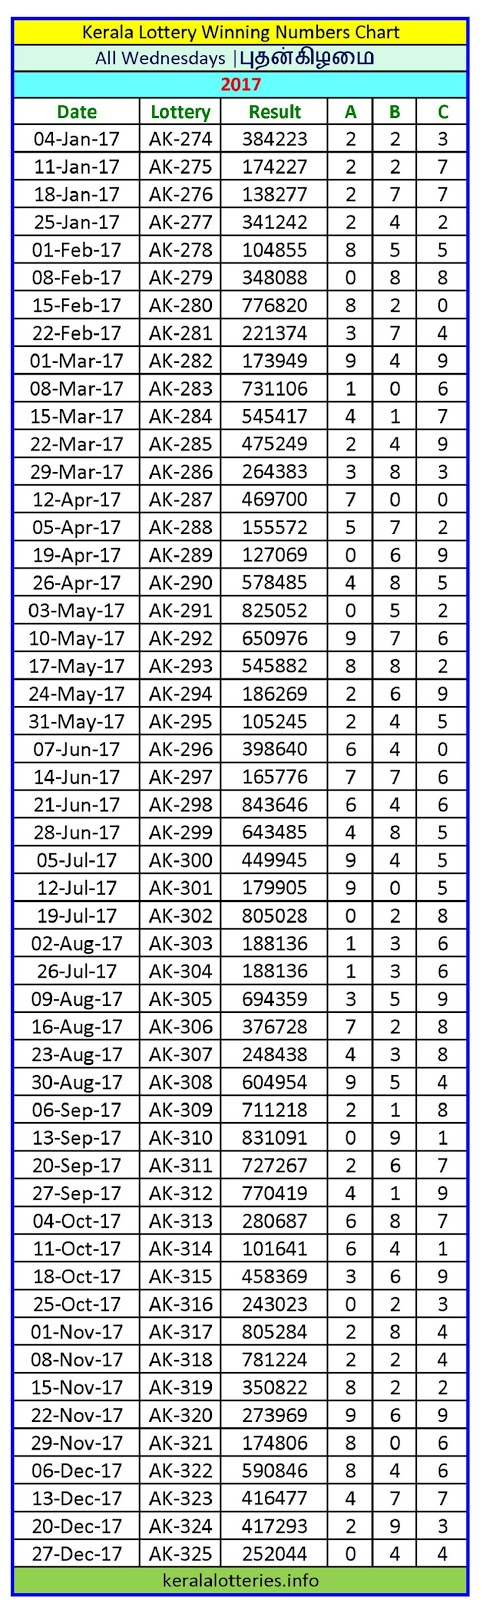 Kerala Lottery Winning Number Chart Wednesday -2017